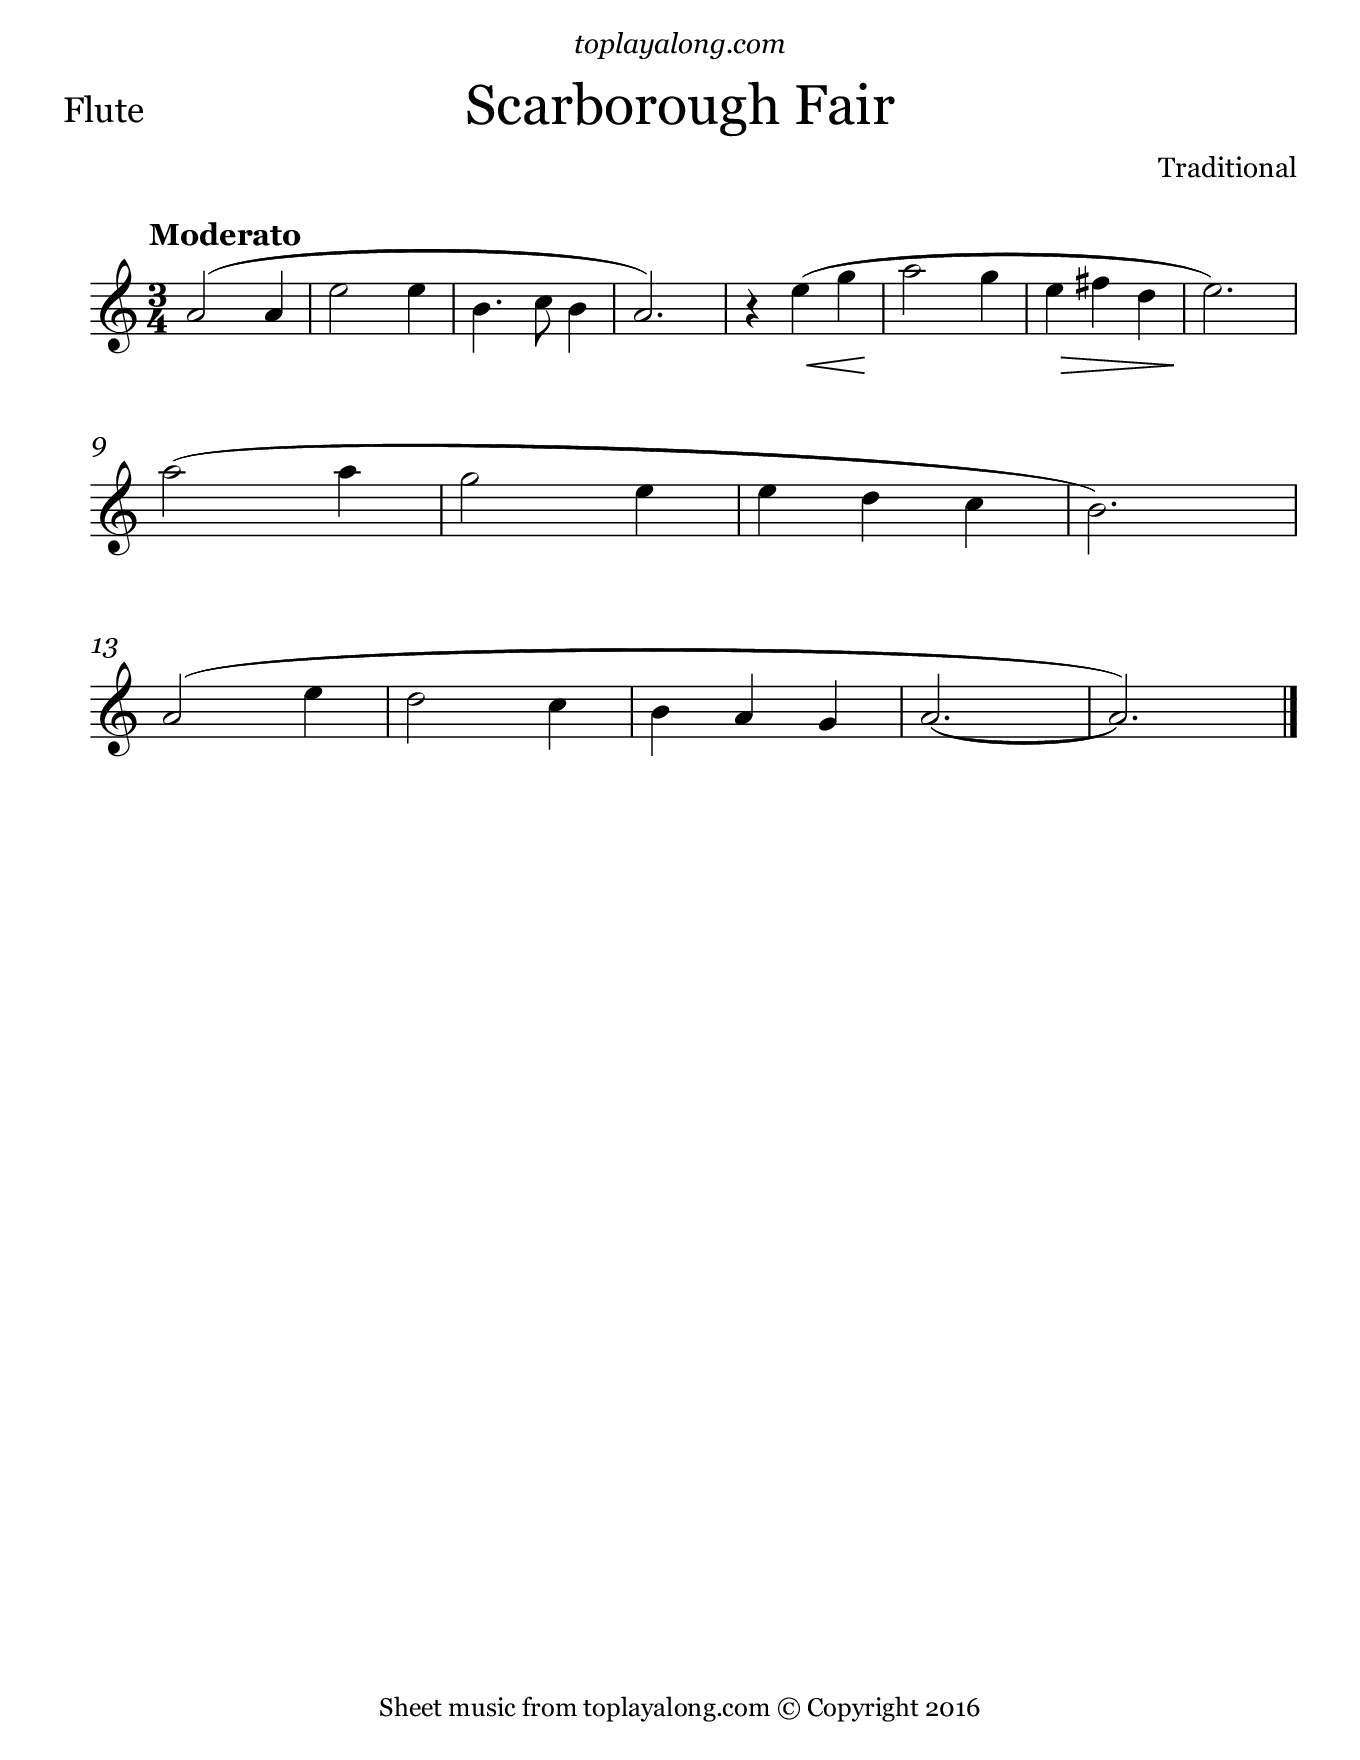 Scarborough Fair. Sheet music for Flute, page 1.